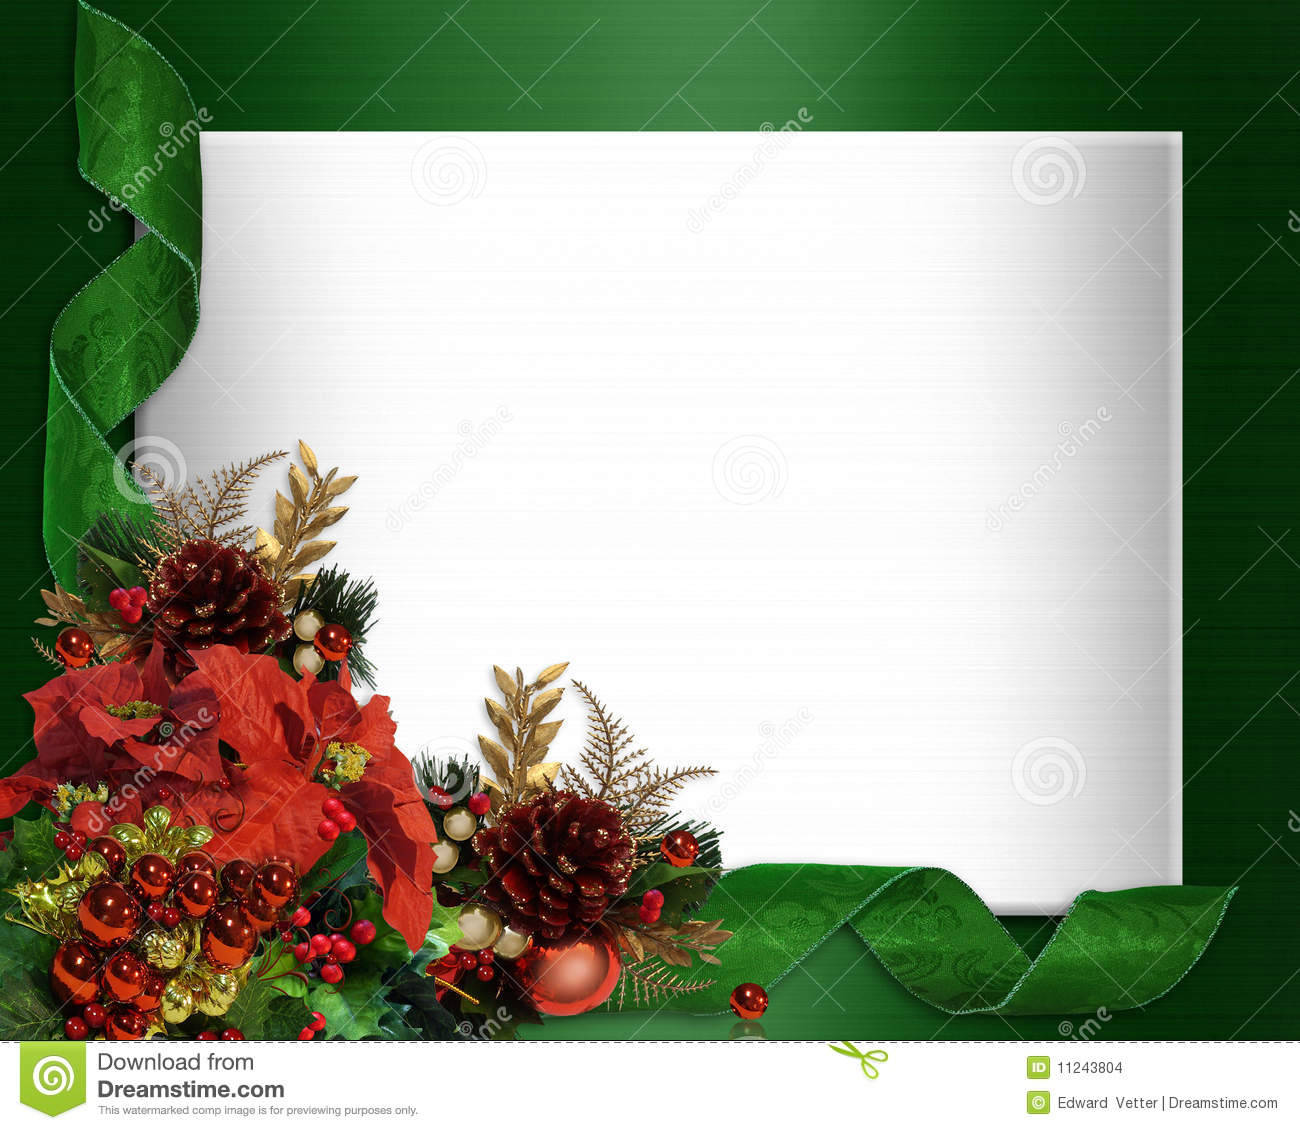 download christmas border elegant stock illustration illustration of decoration 11243804